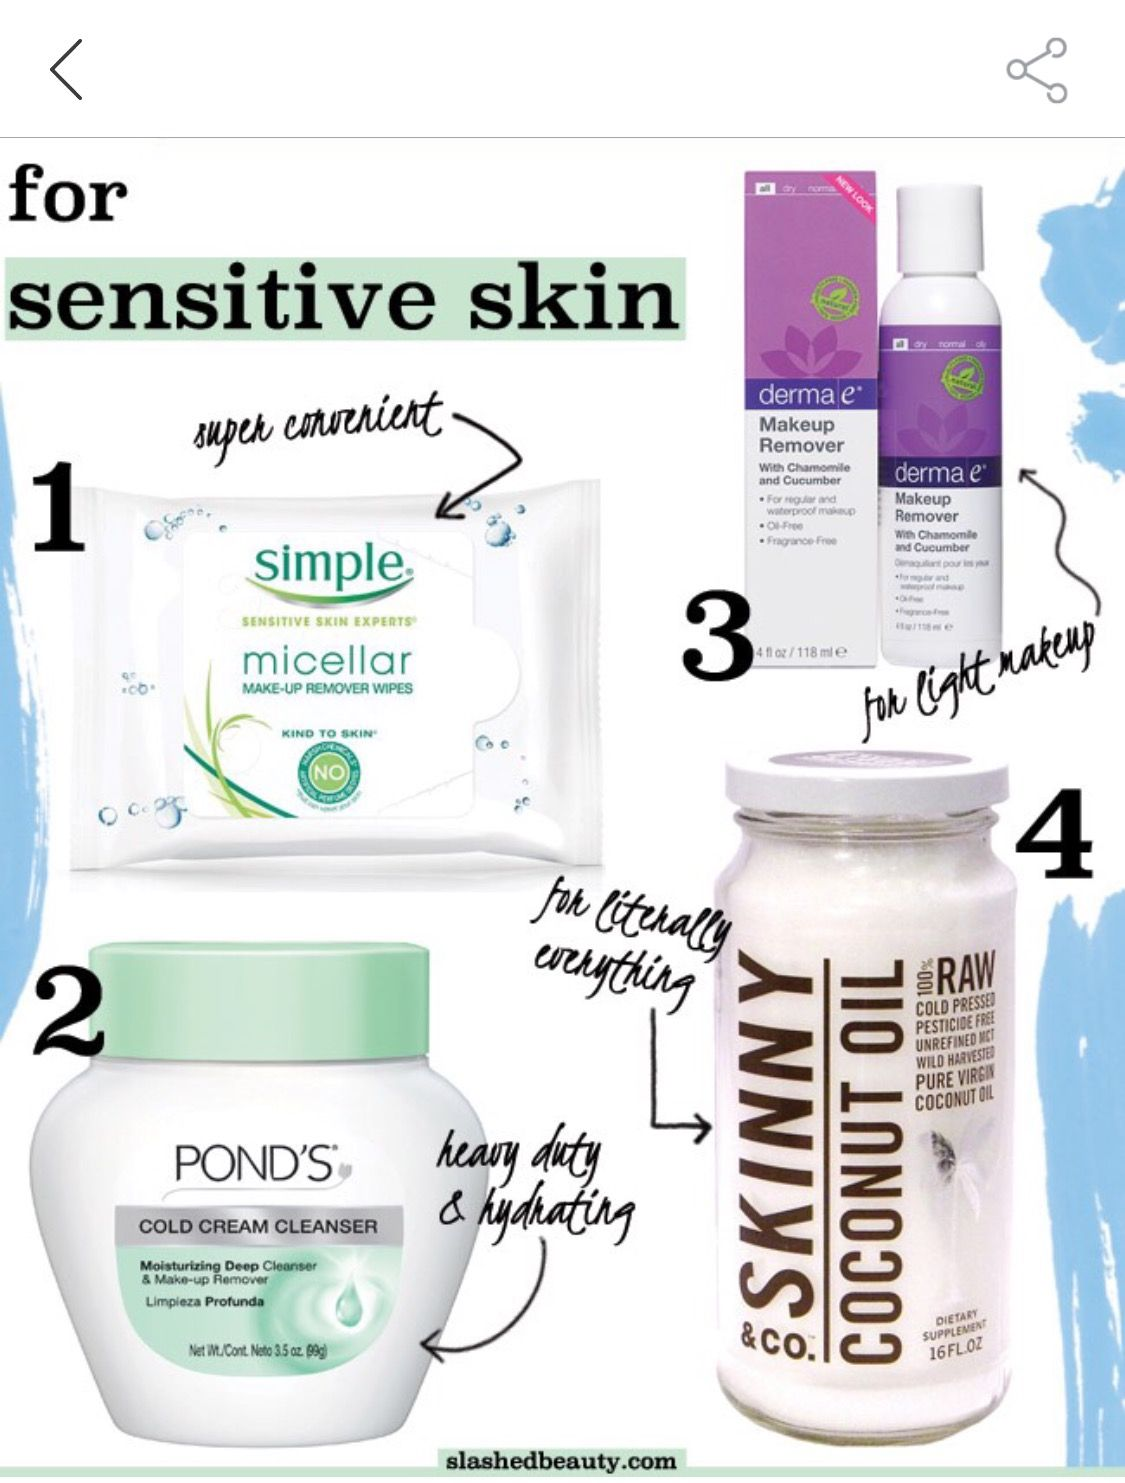 Pin by patra frank on 23 Best makeup remover, Sensitive